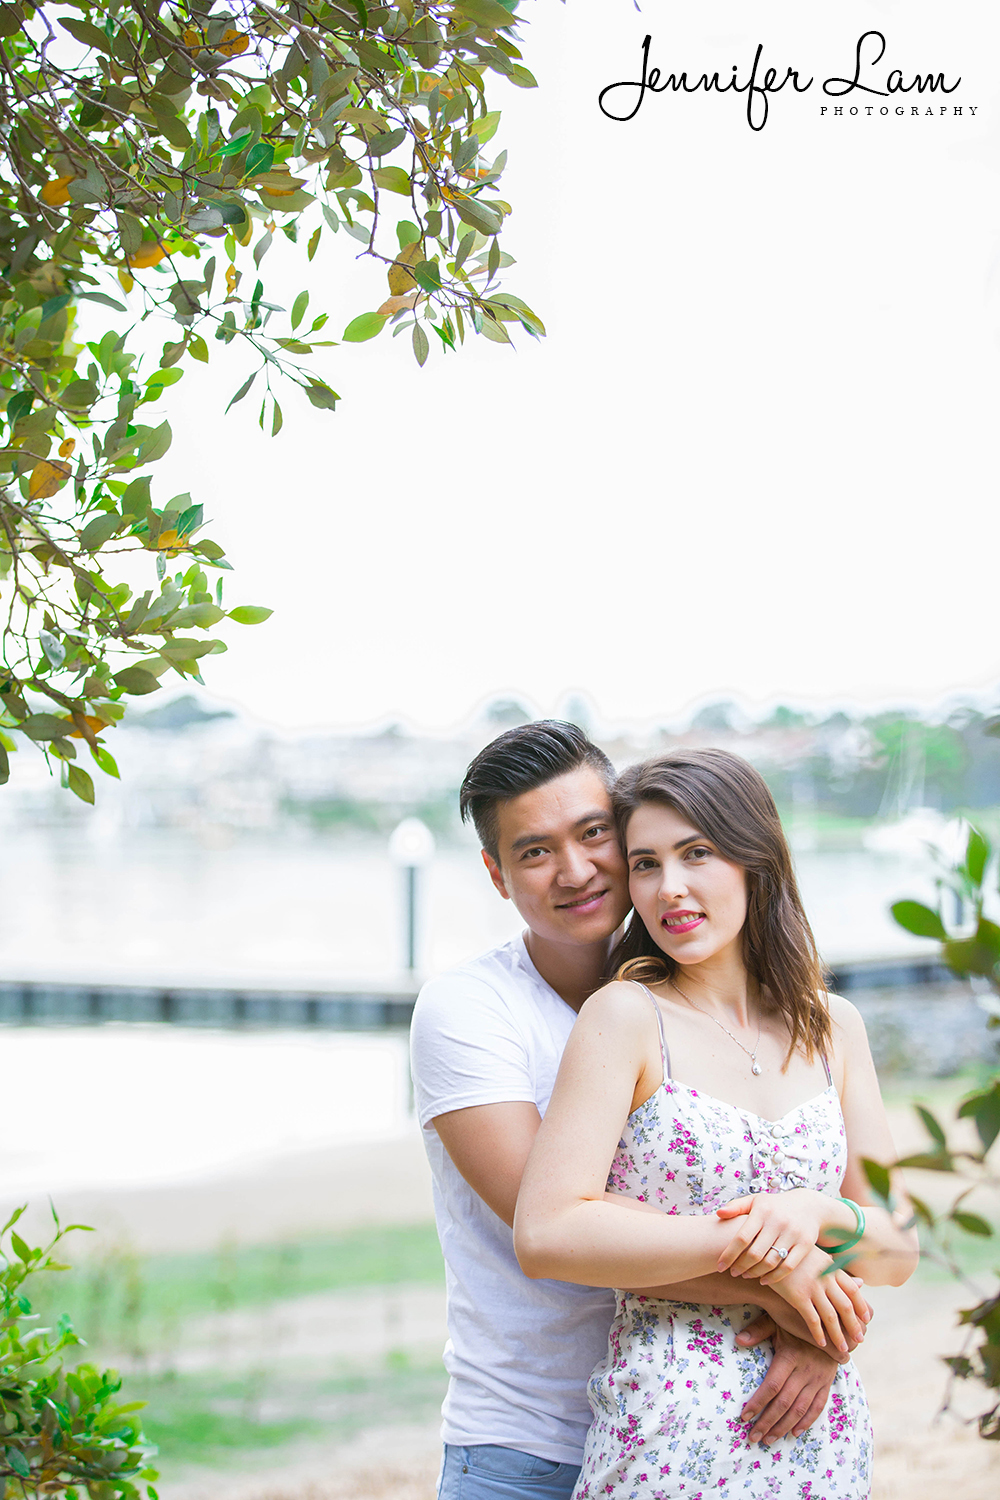 Sydney Pre-Wedding Photography - Jennifer Lam Photography (16).jpg